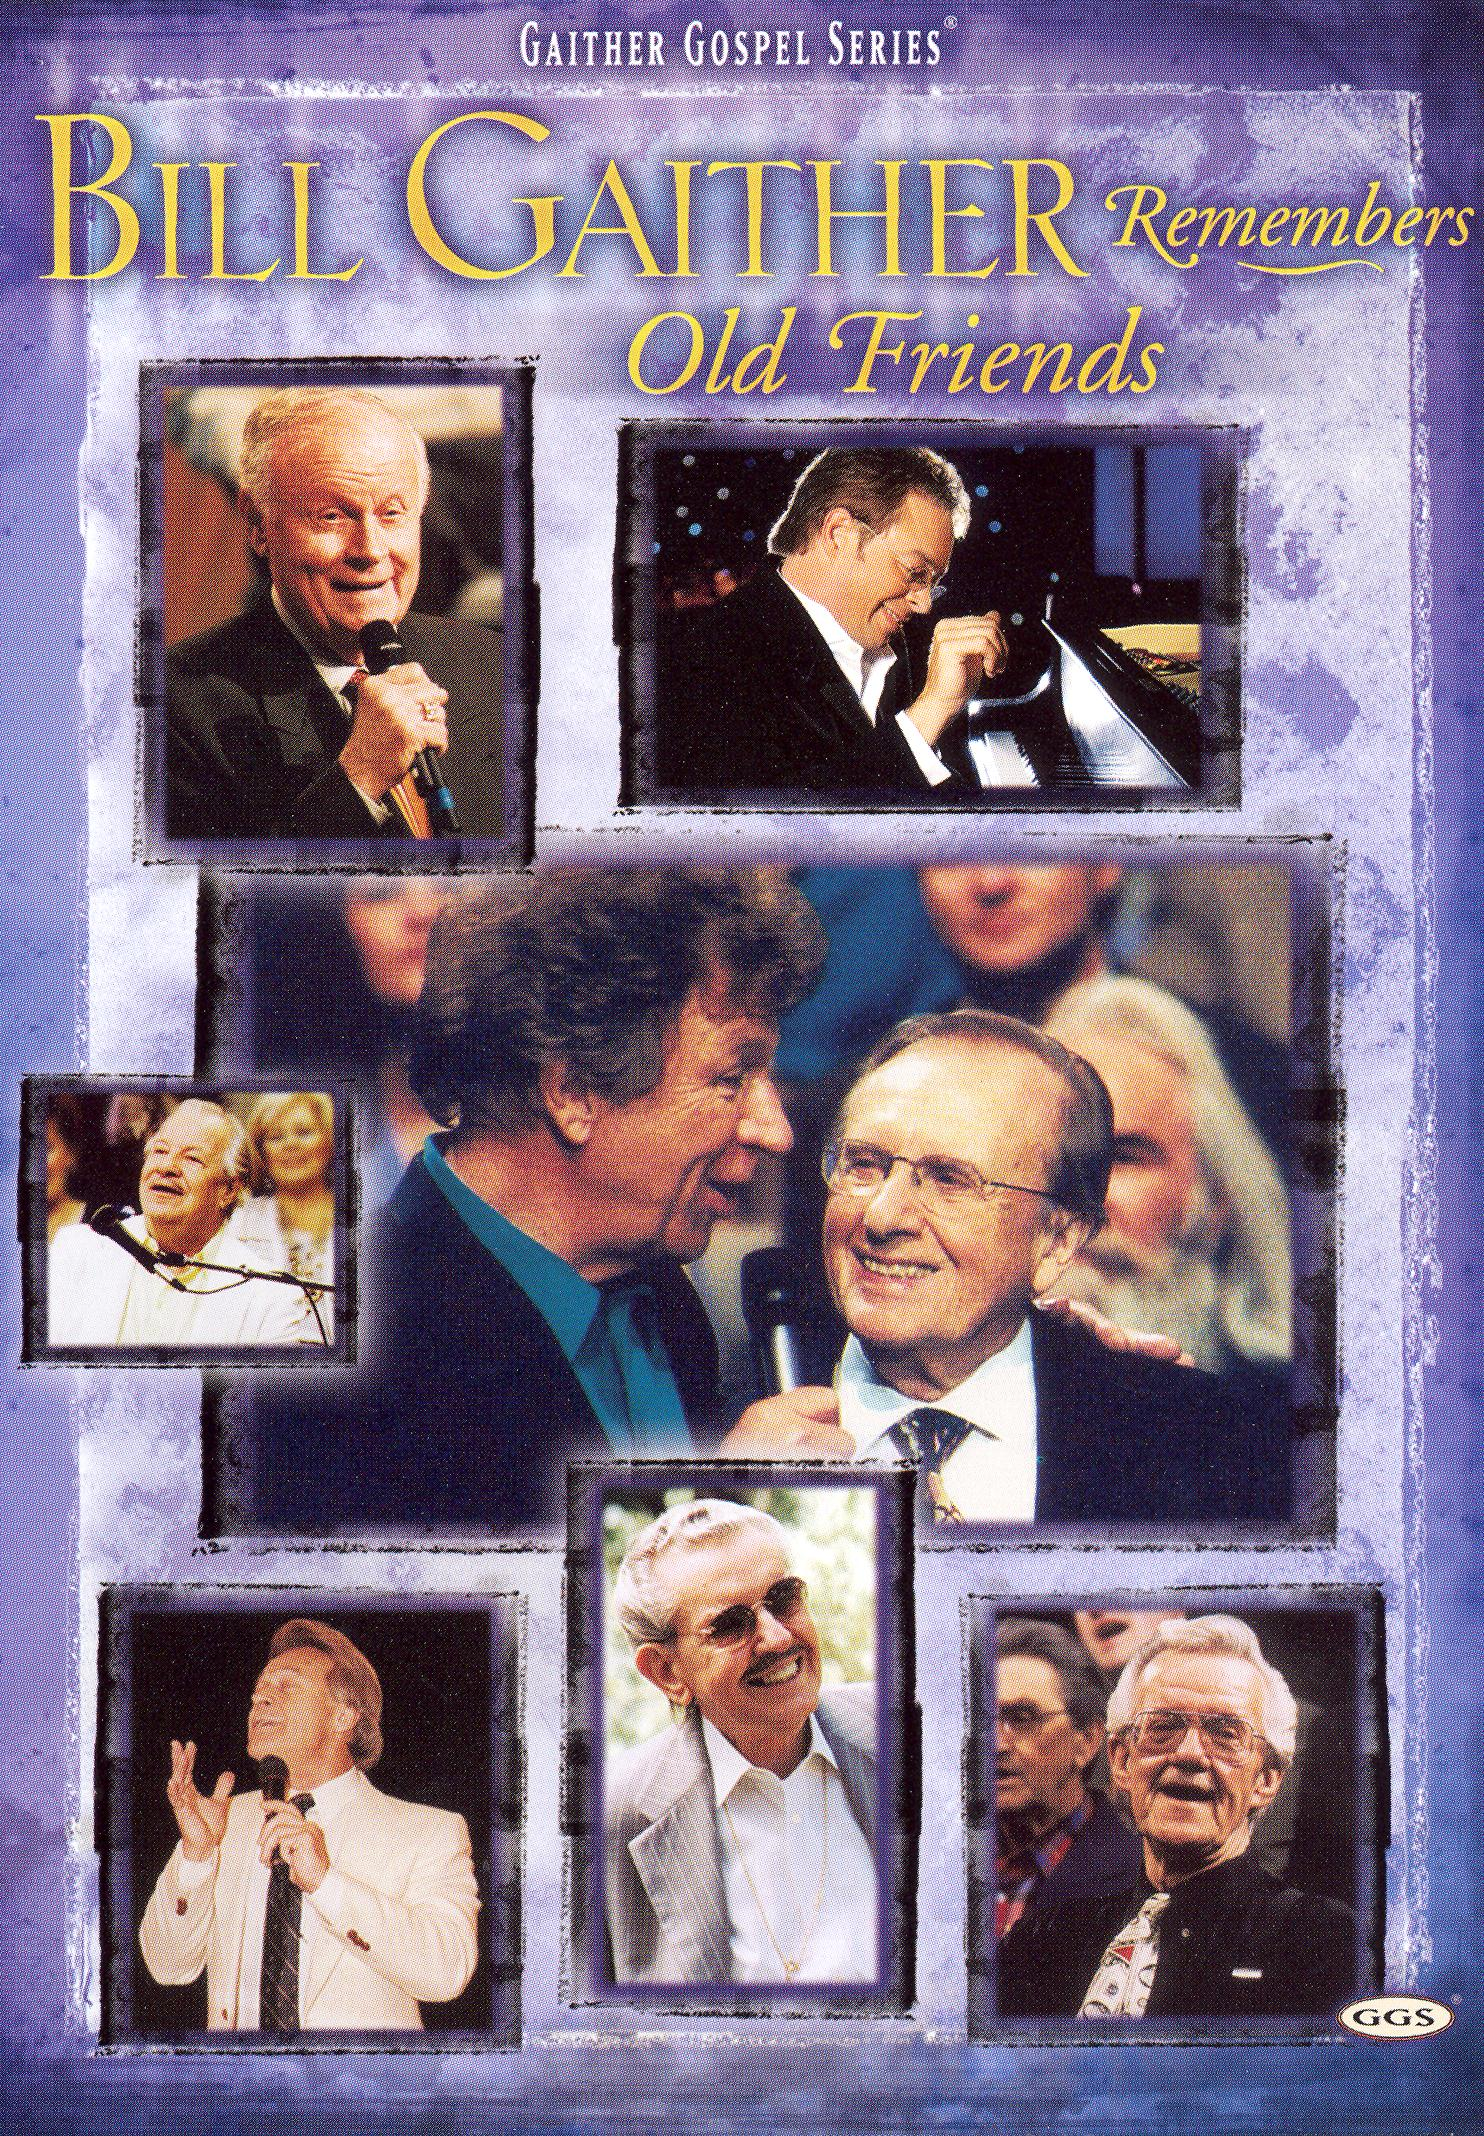 Bill and Gloria Gaither and Their Homecoming Friends: Bill Gaither Remembers Old Friends